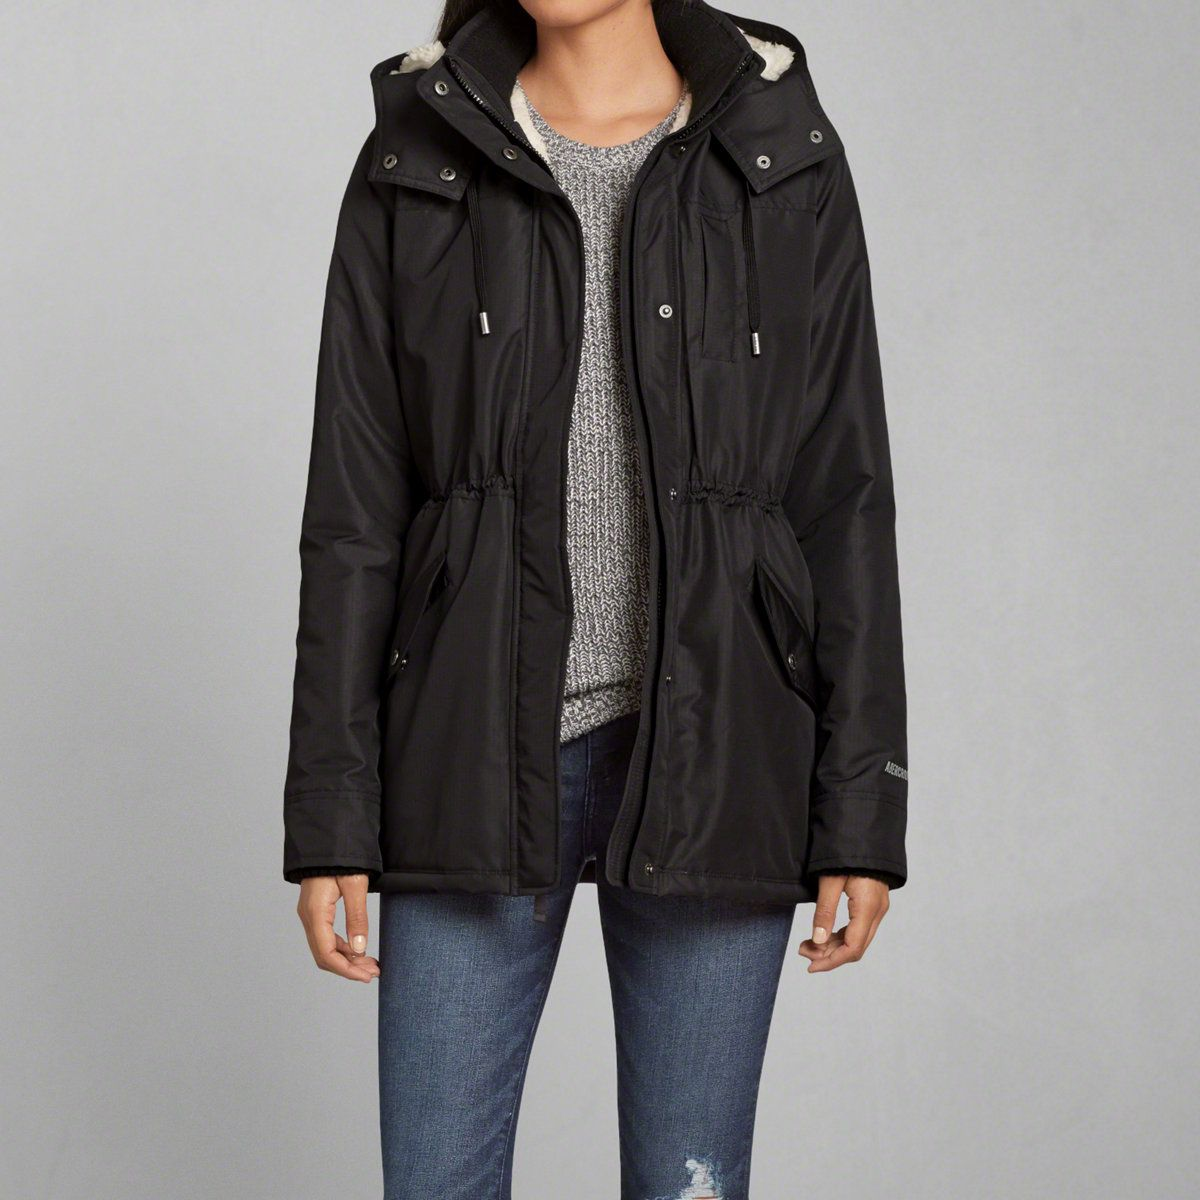 Womens A&F All-Season Weather Warrior Sherpa Lined Parka | Womens ...